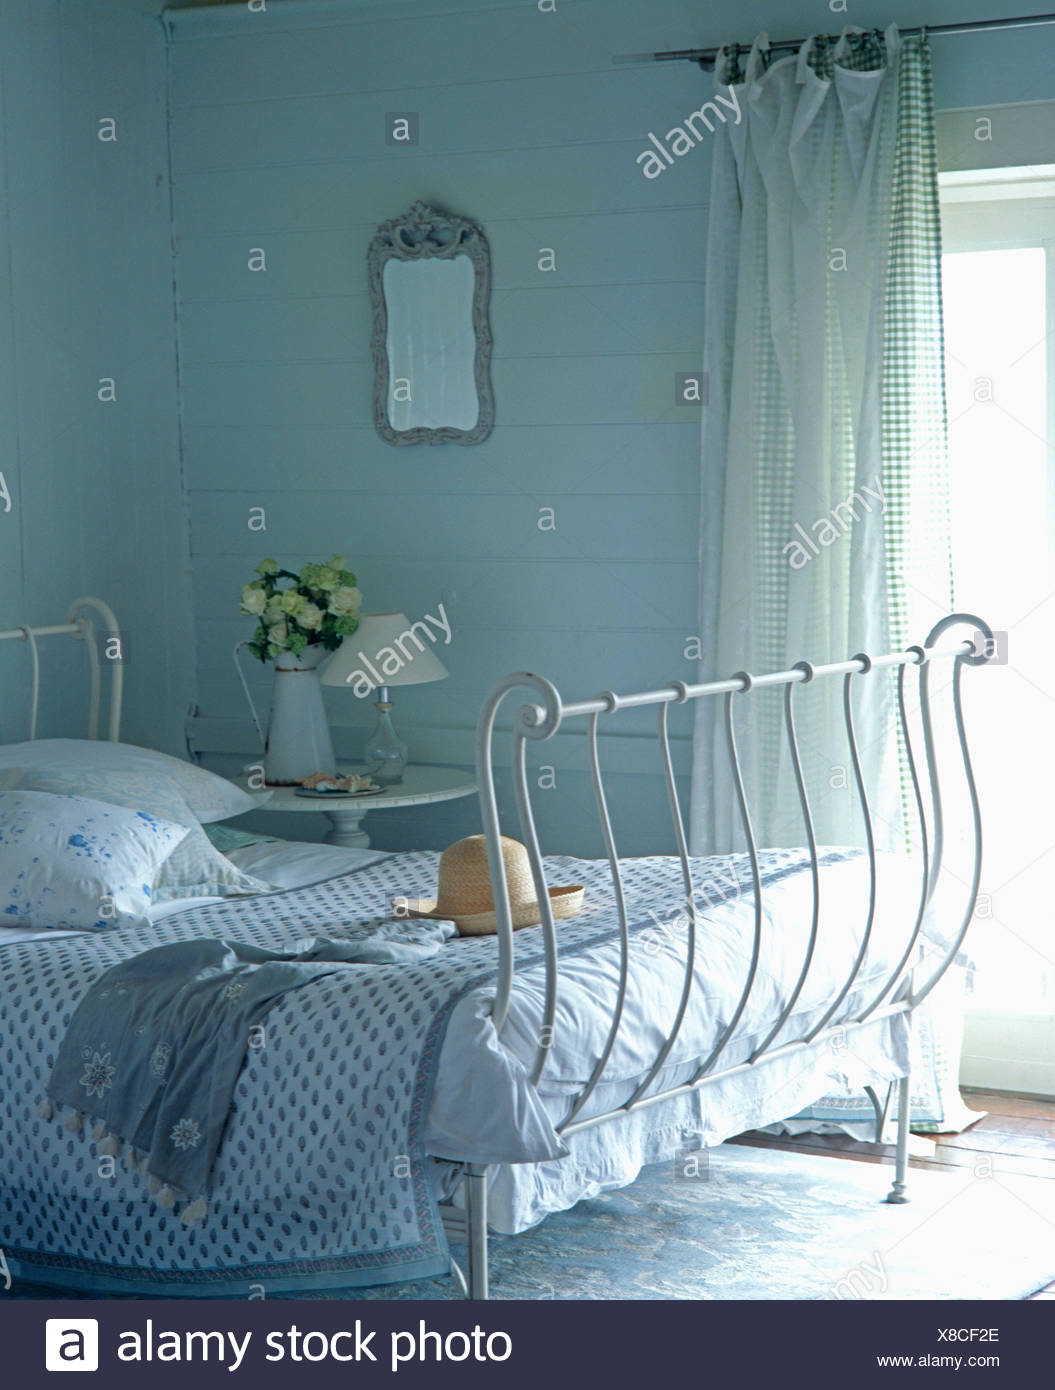 White Wrought Iron Bed With Pale Blue Quilt In Cottage Bedroom With Checked And White Voile Curtains Stock Photo Alamy